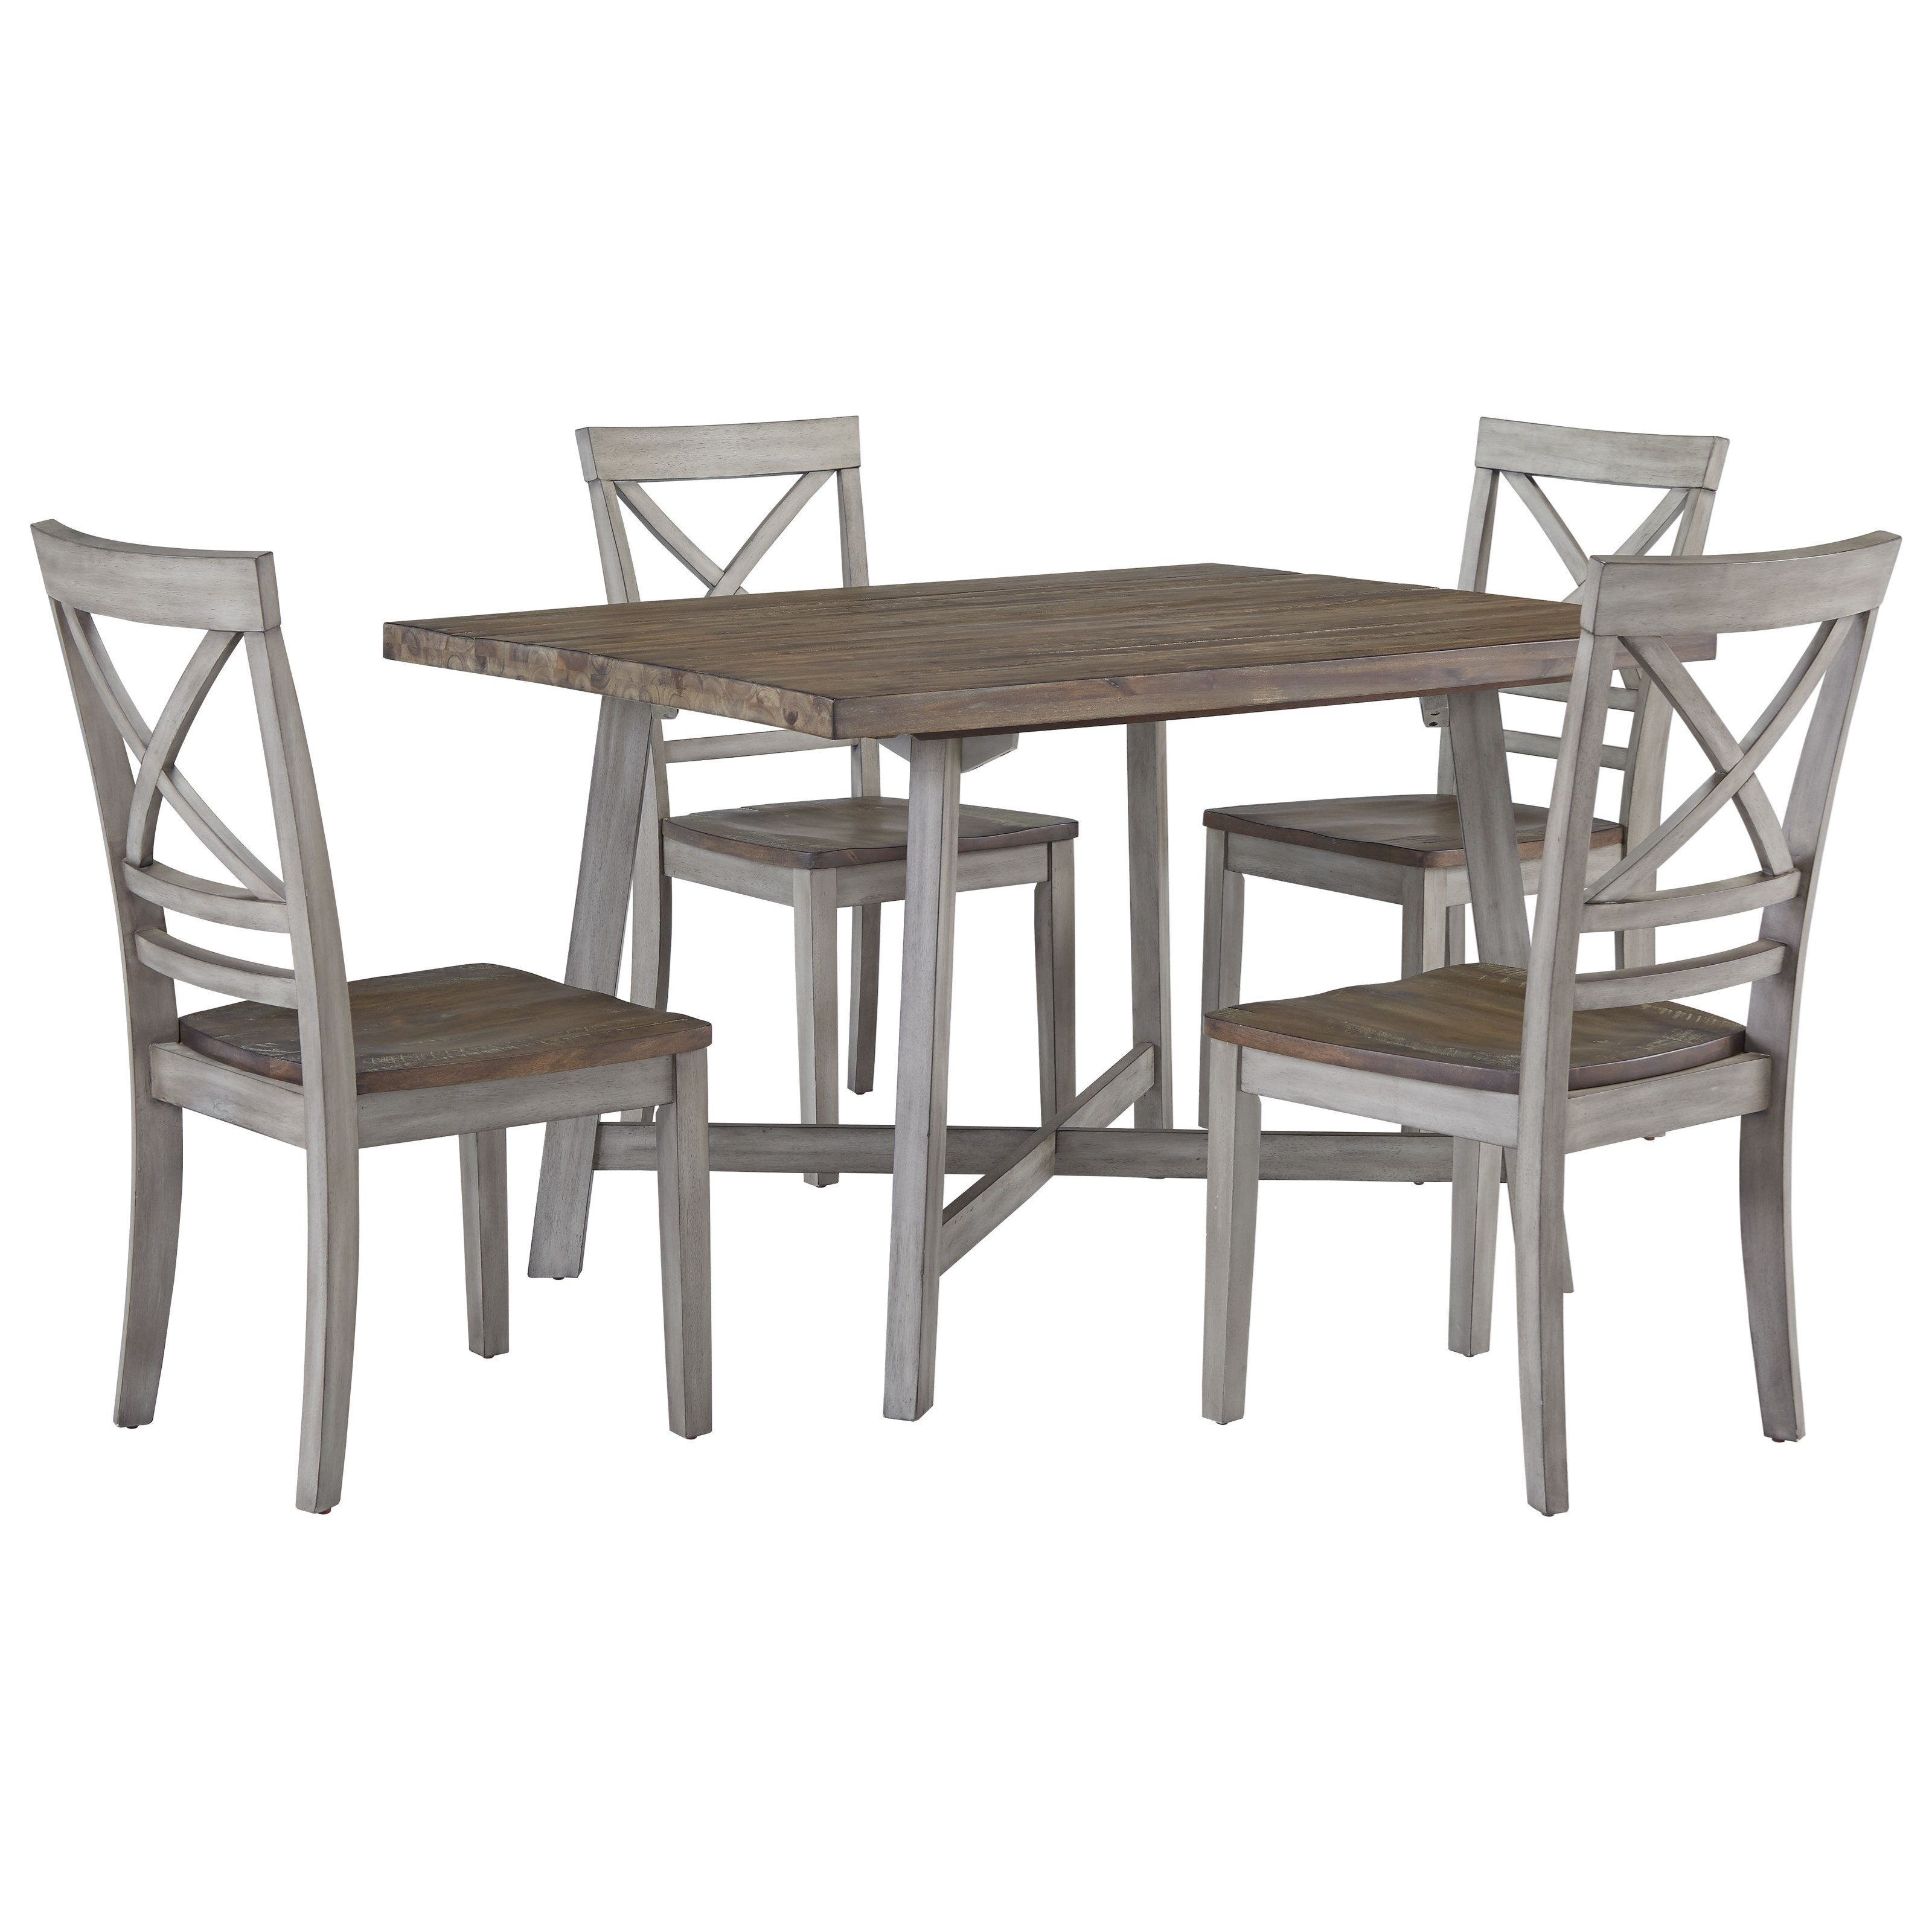 Standard Furniture Fairhaven 12862 Rustic Two Tone Table